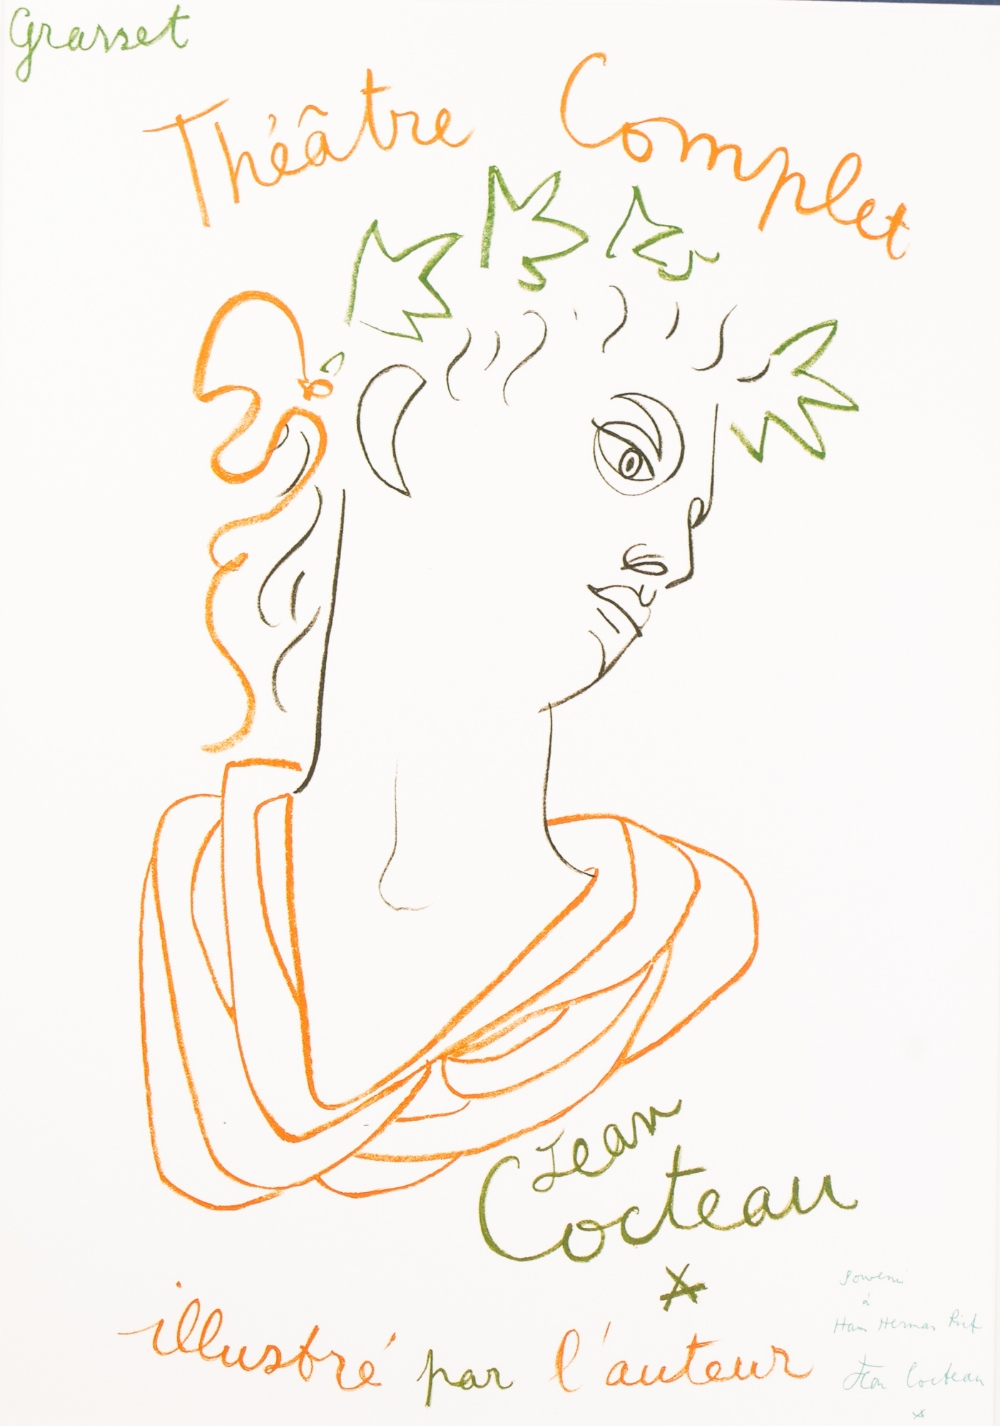 Lot 175 - JEAN COCTEAU (FRENCH 1889 - 1963) TWO OFFSET LITHOGRAPHS Respectively 'Theatre Complet' and 'Le